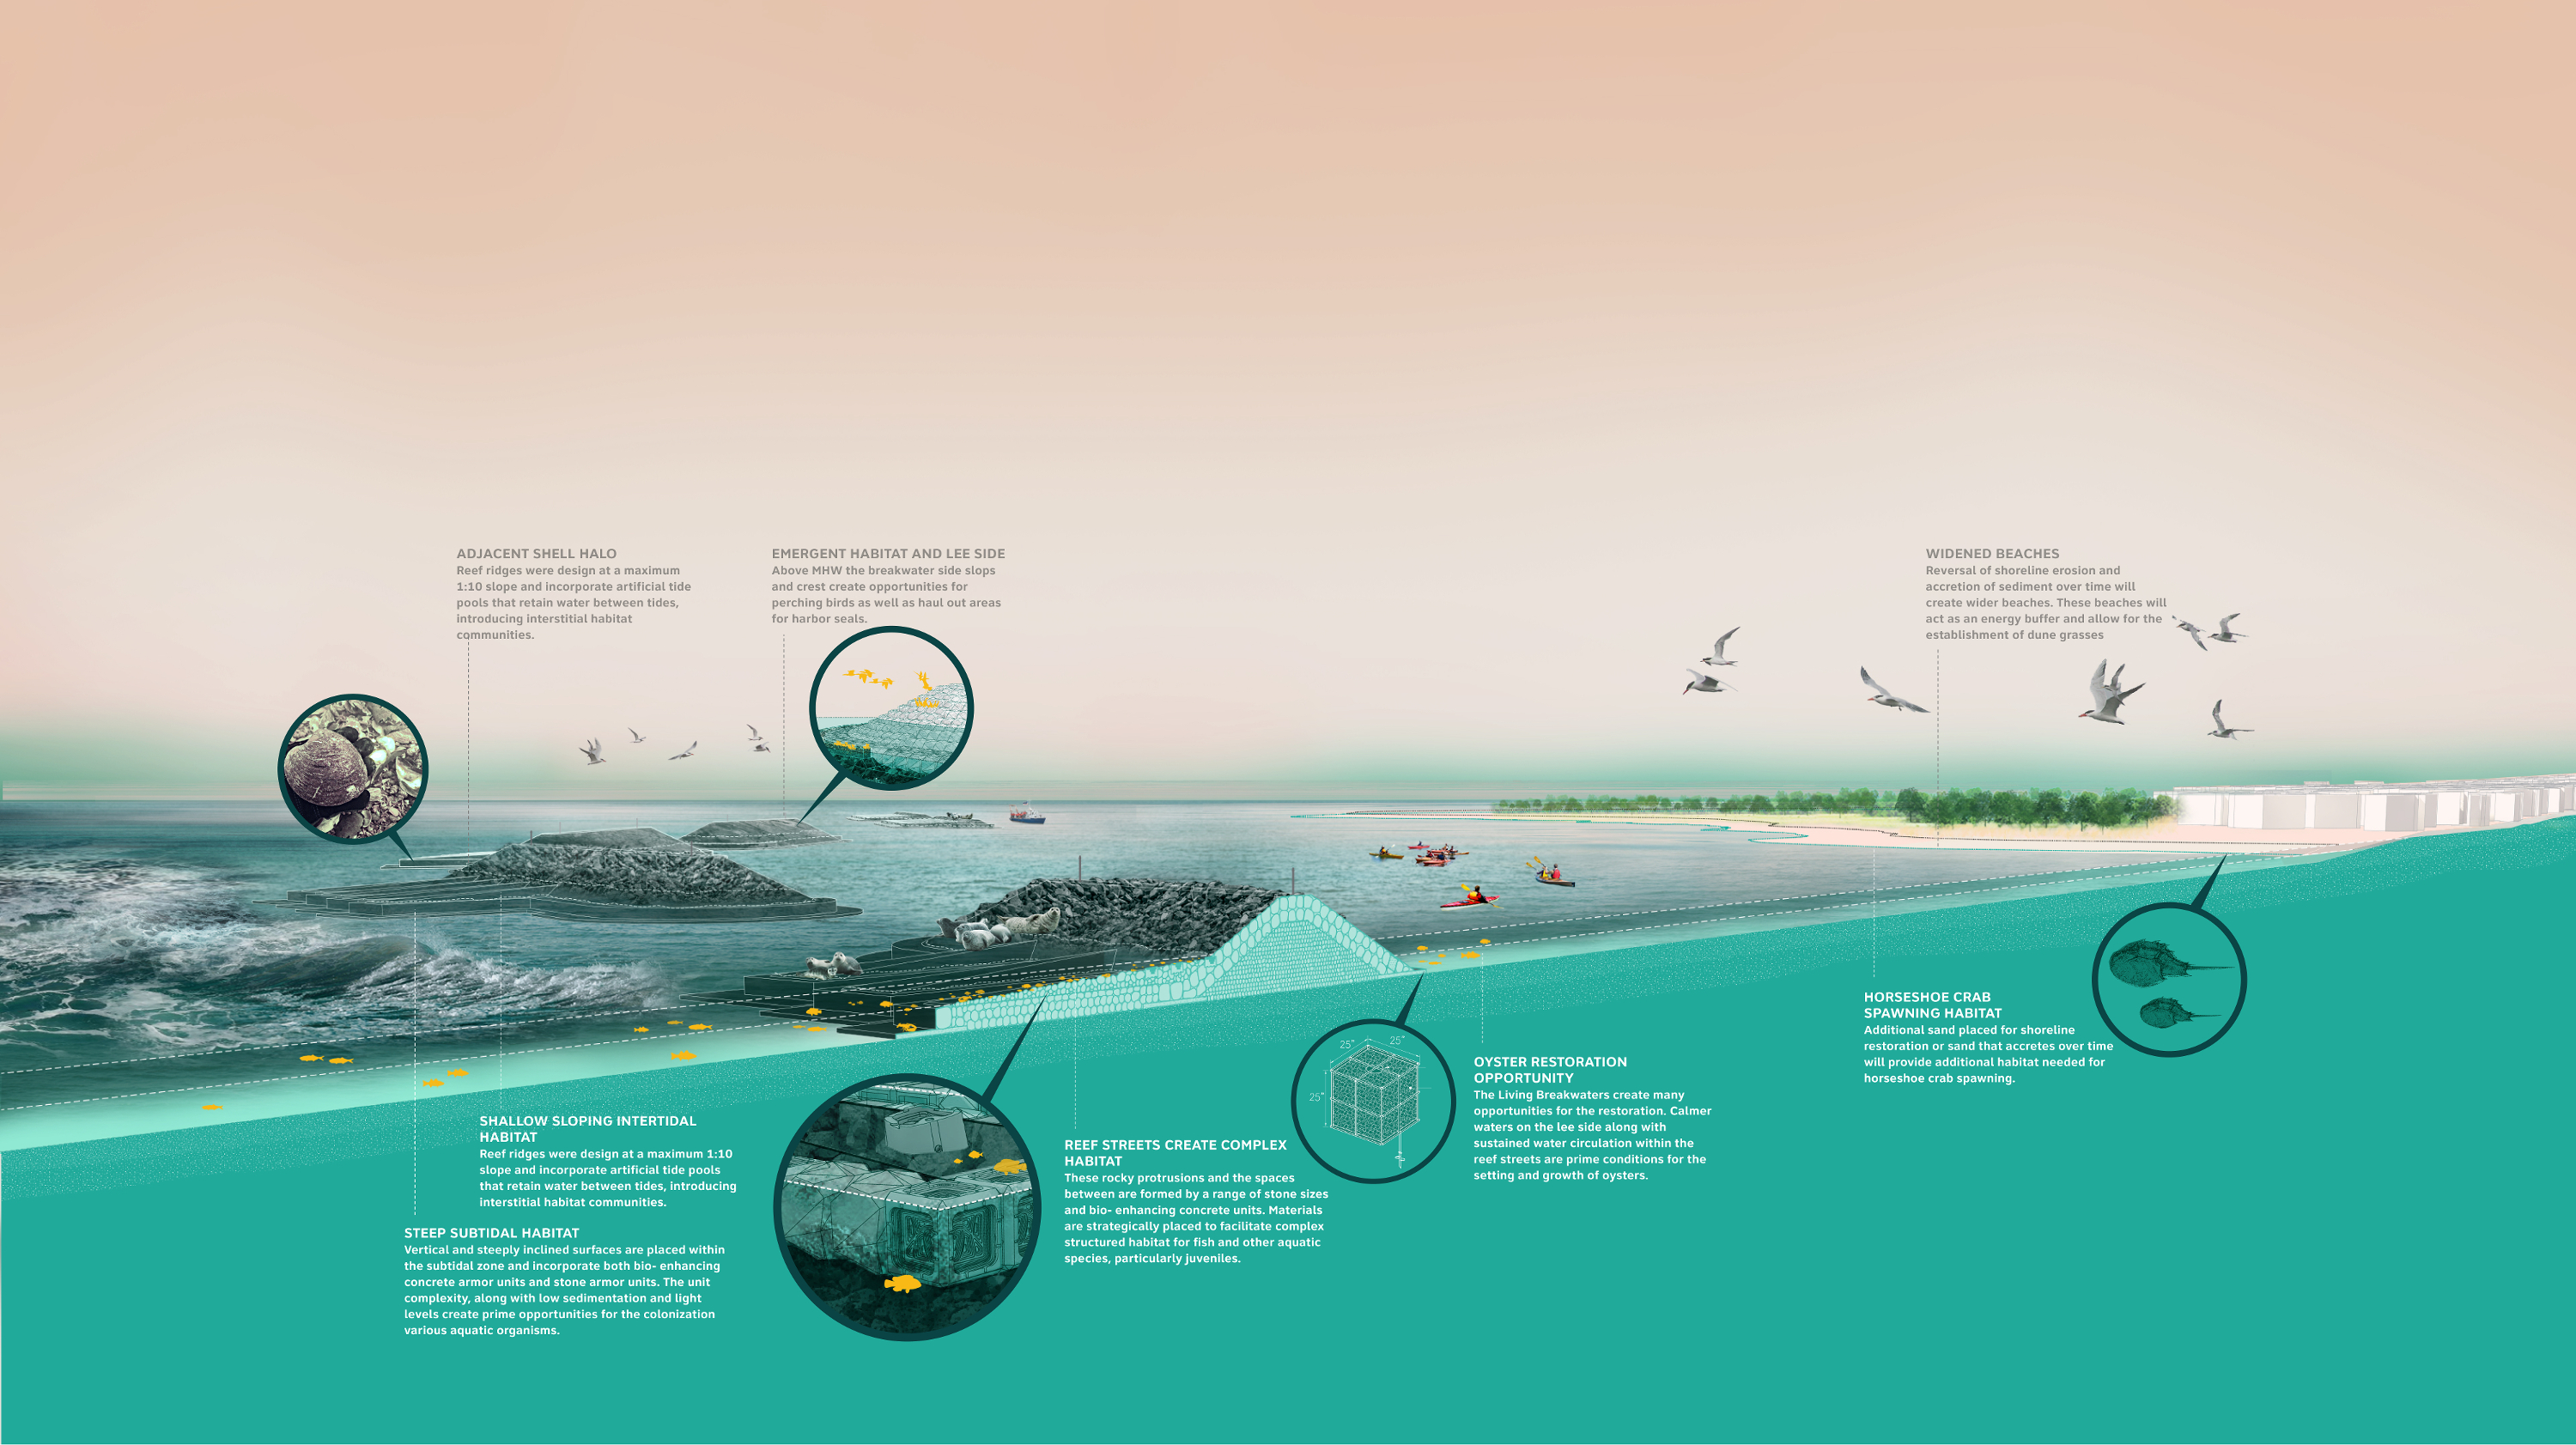 A schematic that illustrates, describes, and explains the different components of the Living Breakwaters.